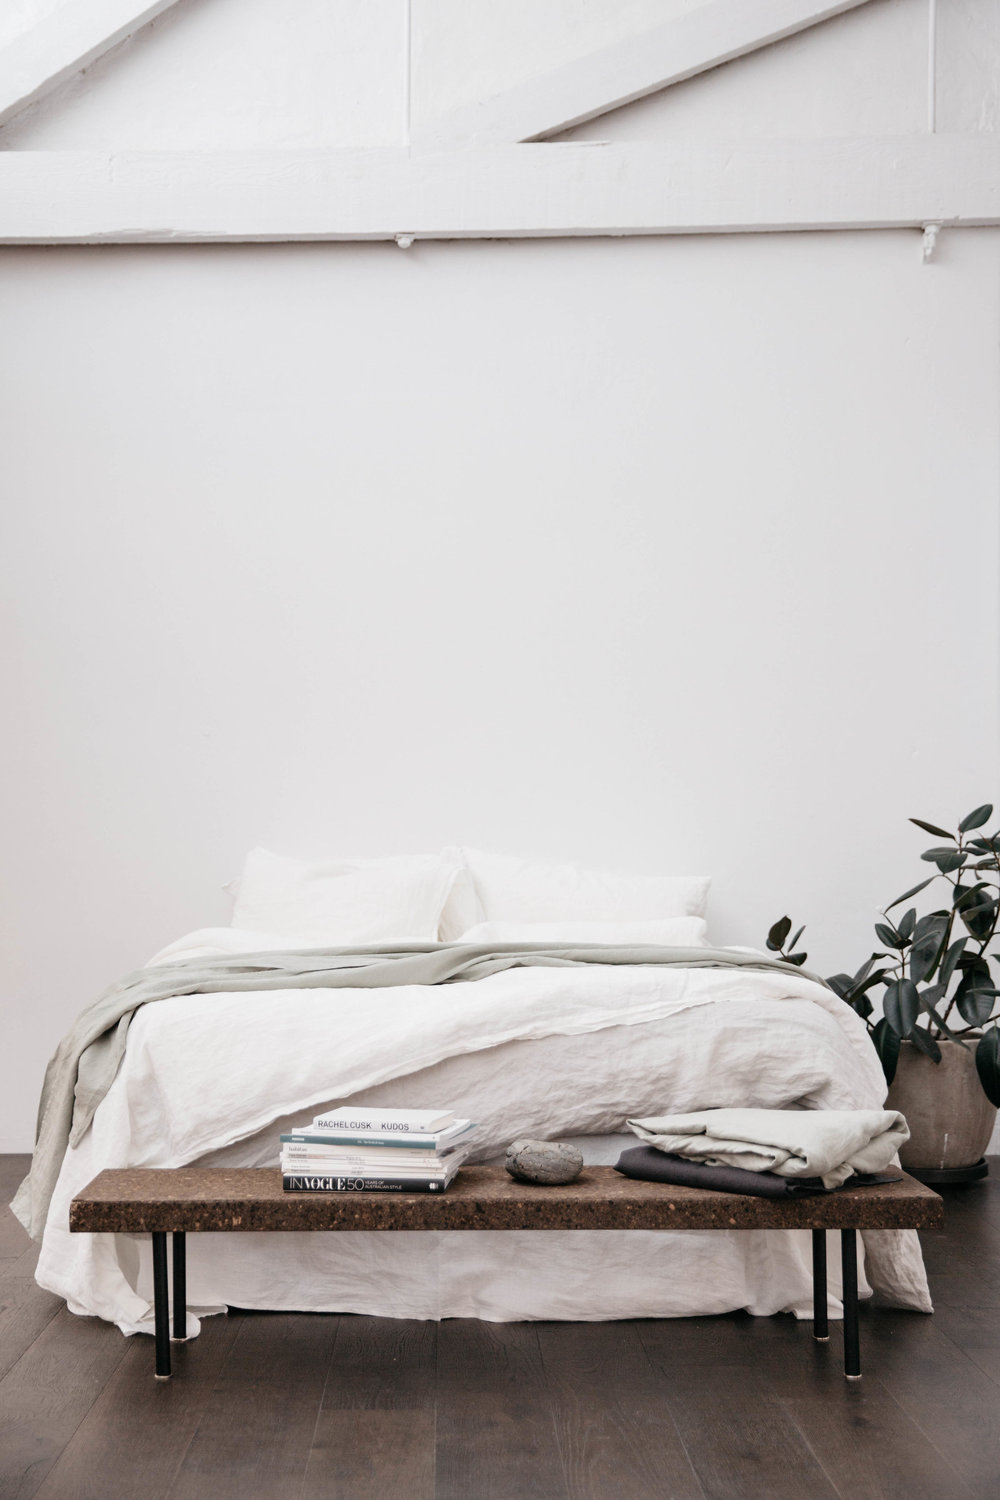 Products shown: Standard pillow cases in Optic White, Duvet Cover in Optic White, Flat Sheet in Stone.